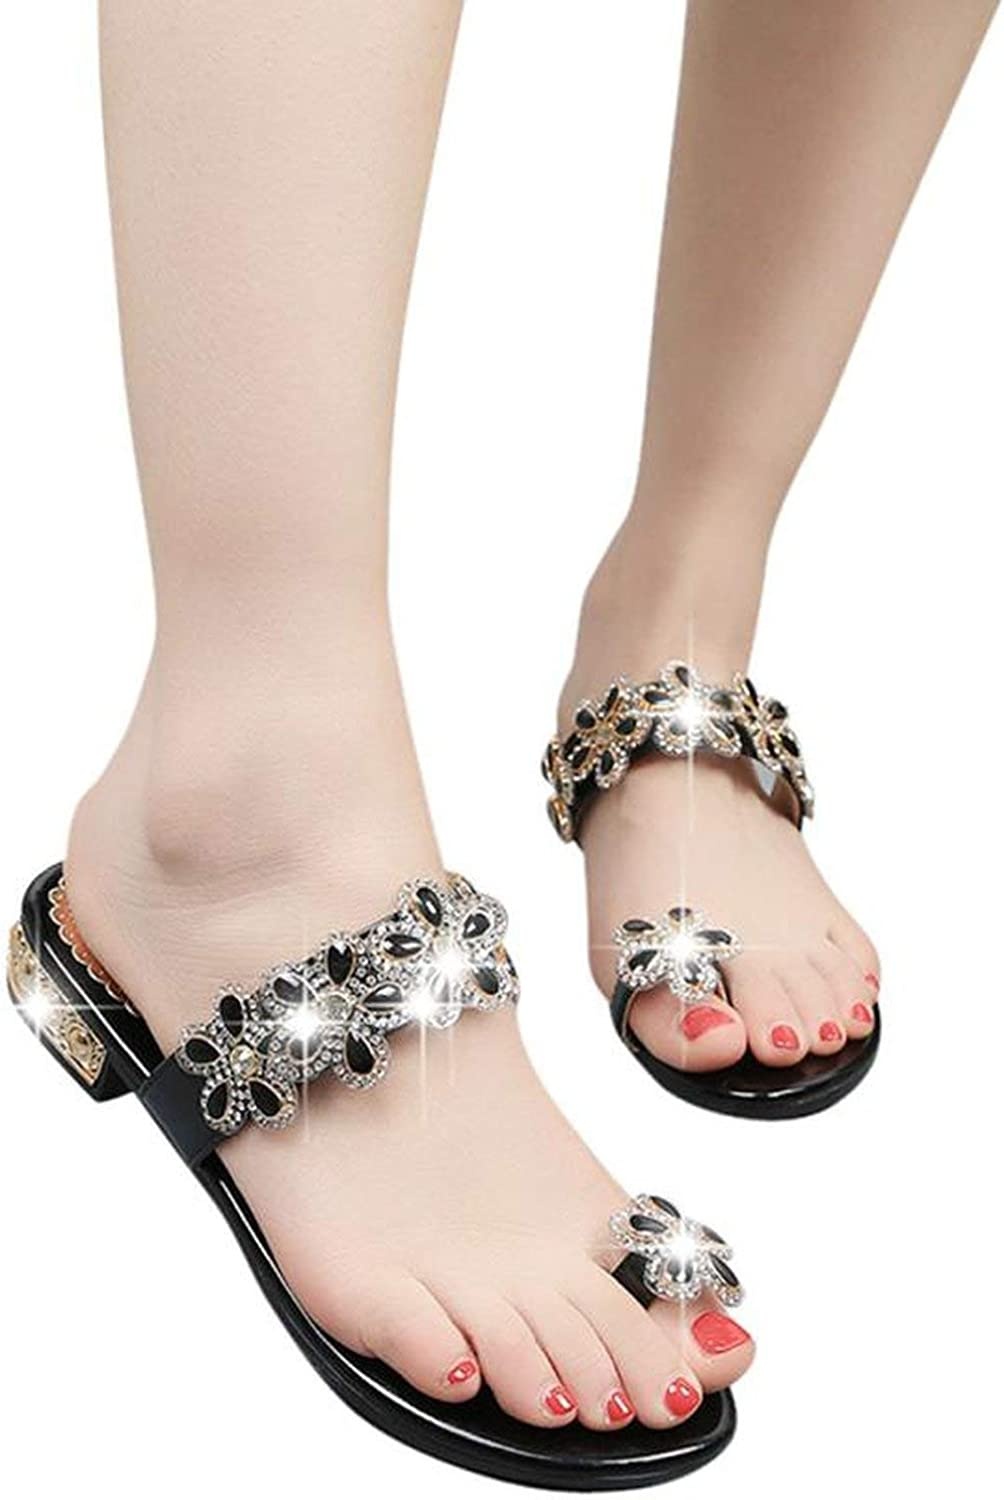 Rhinestone Floral Open Toe shoes Bohemia Anti Skidding Low Heel Slippers